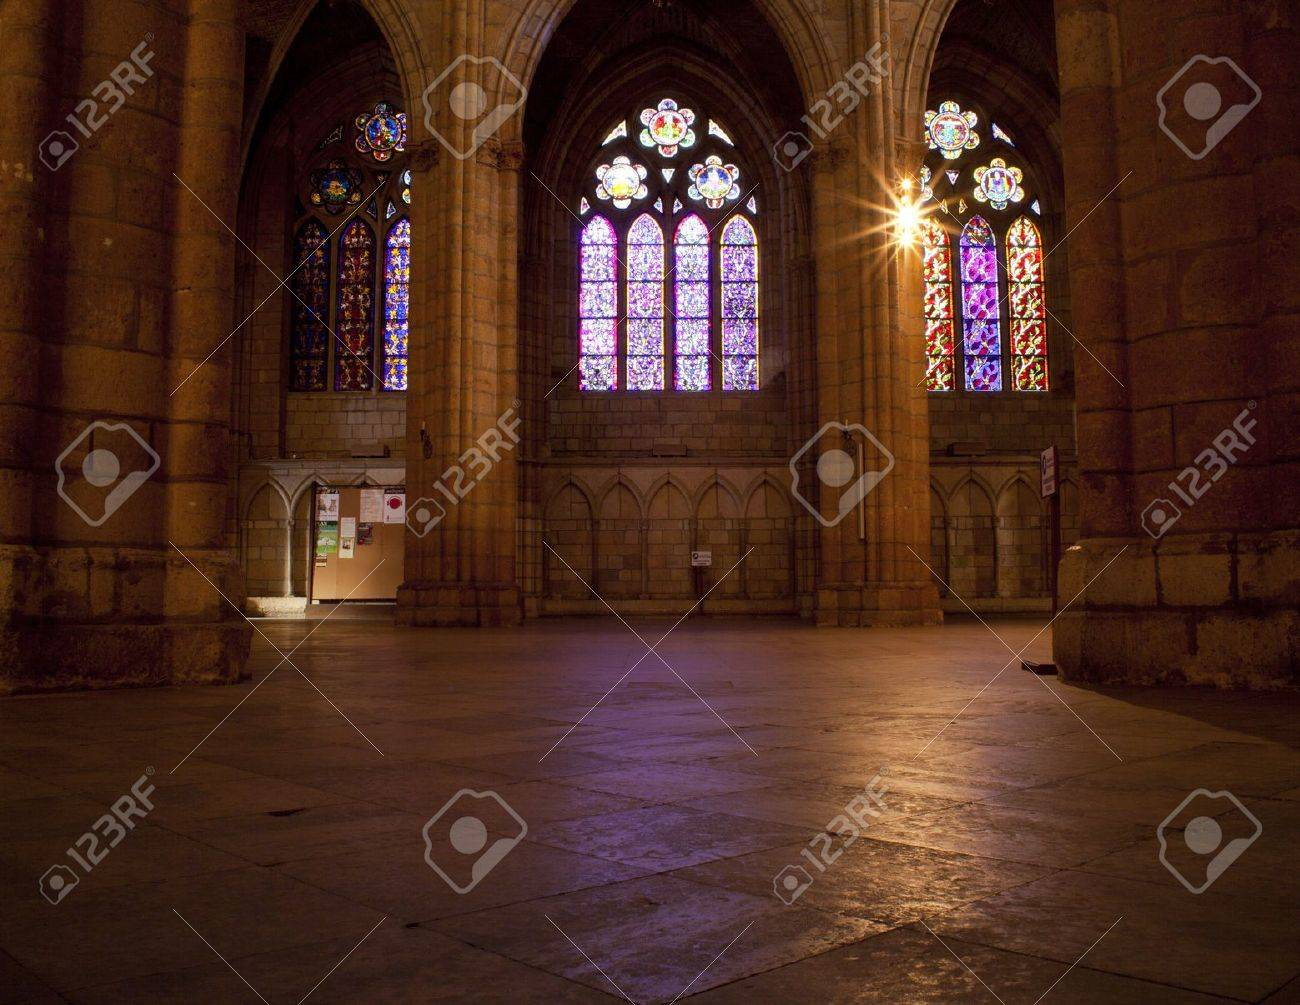 Interior of the Leon's cathedral Stock Photo - 9813718